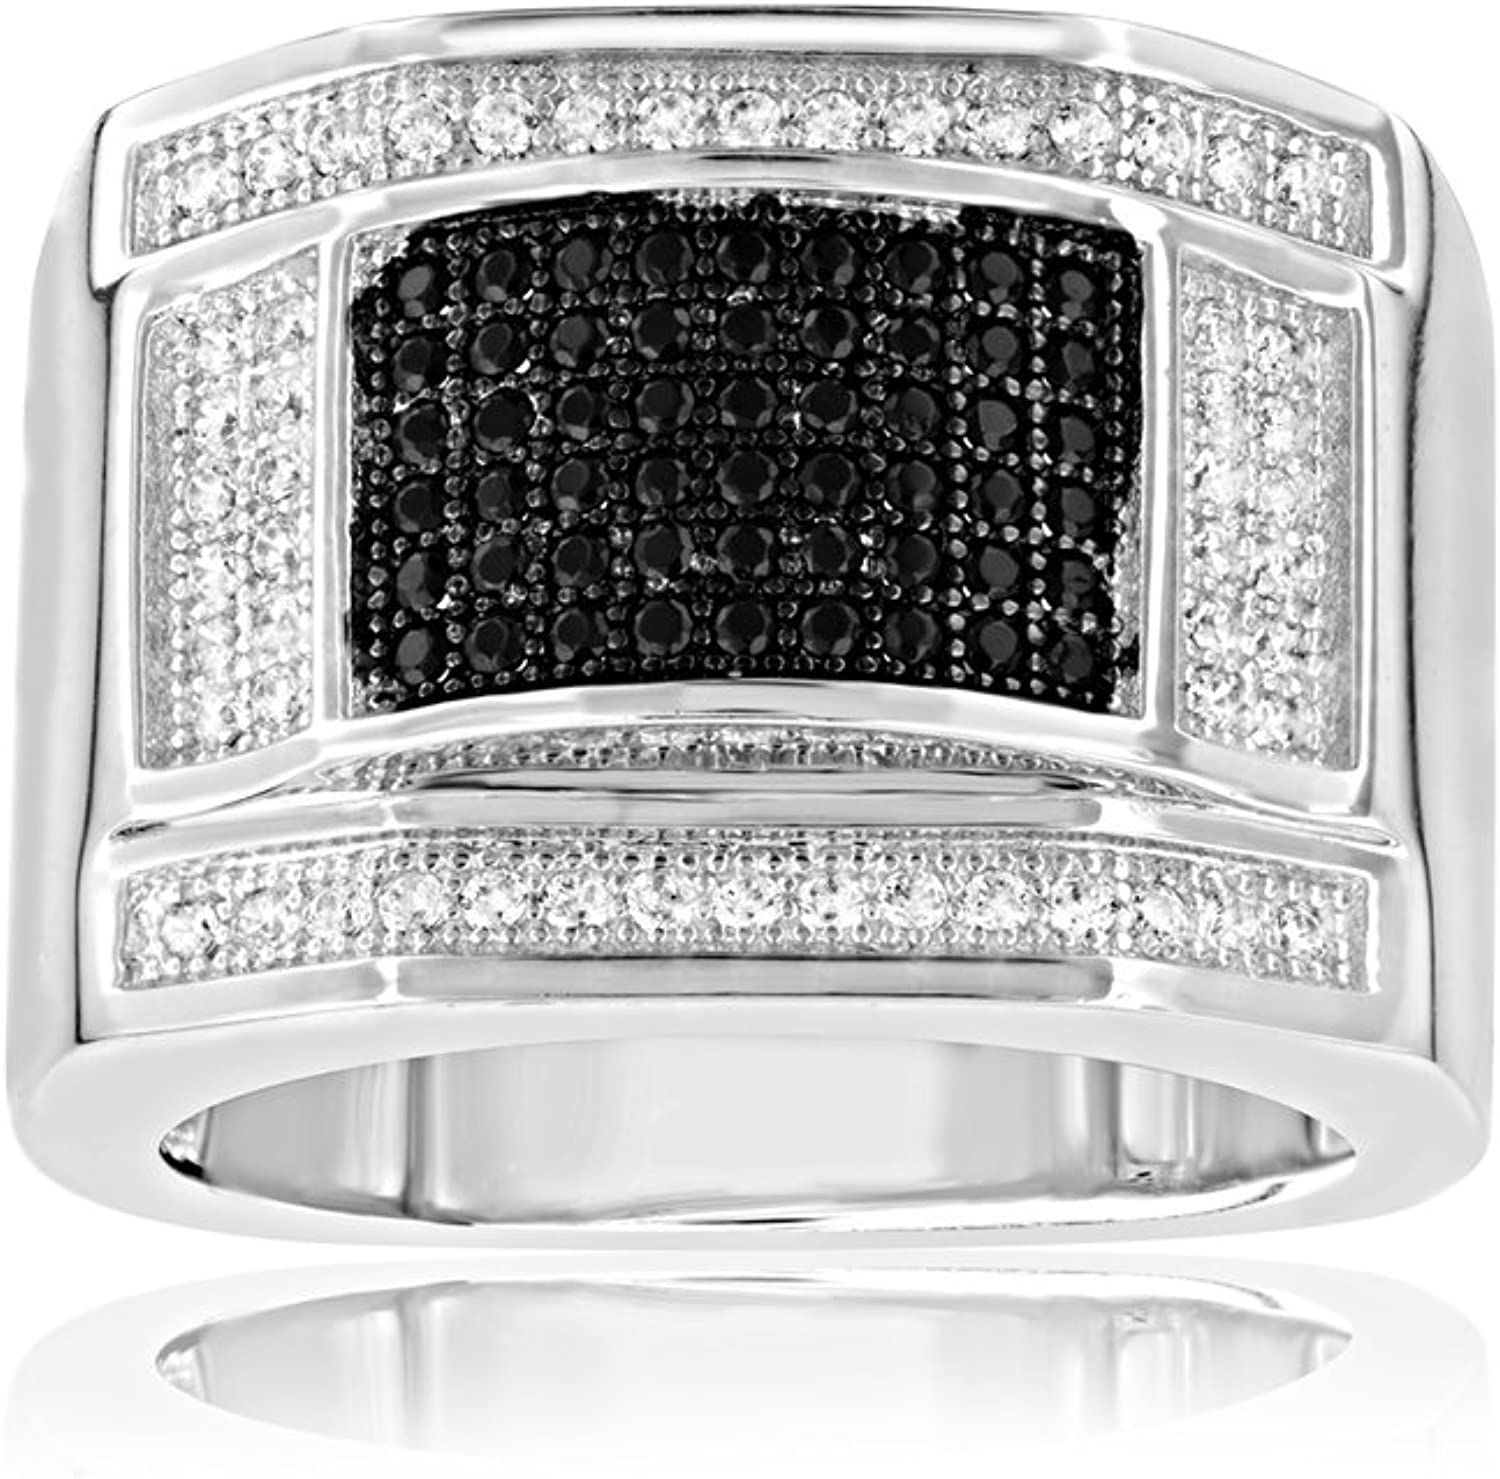 108 Black and White Swarovski Crystal Zirconia Signet Ring and 925 Silver  T8 CRY J403 X  T56  bluee Pearls